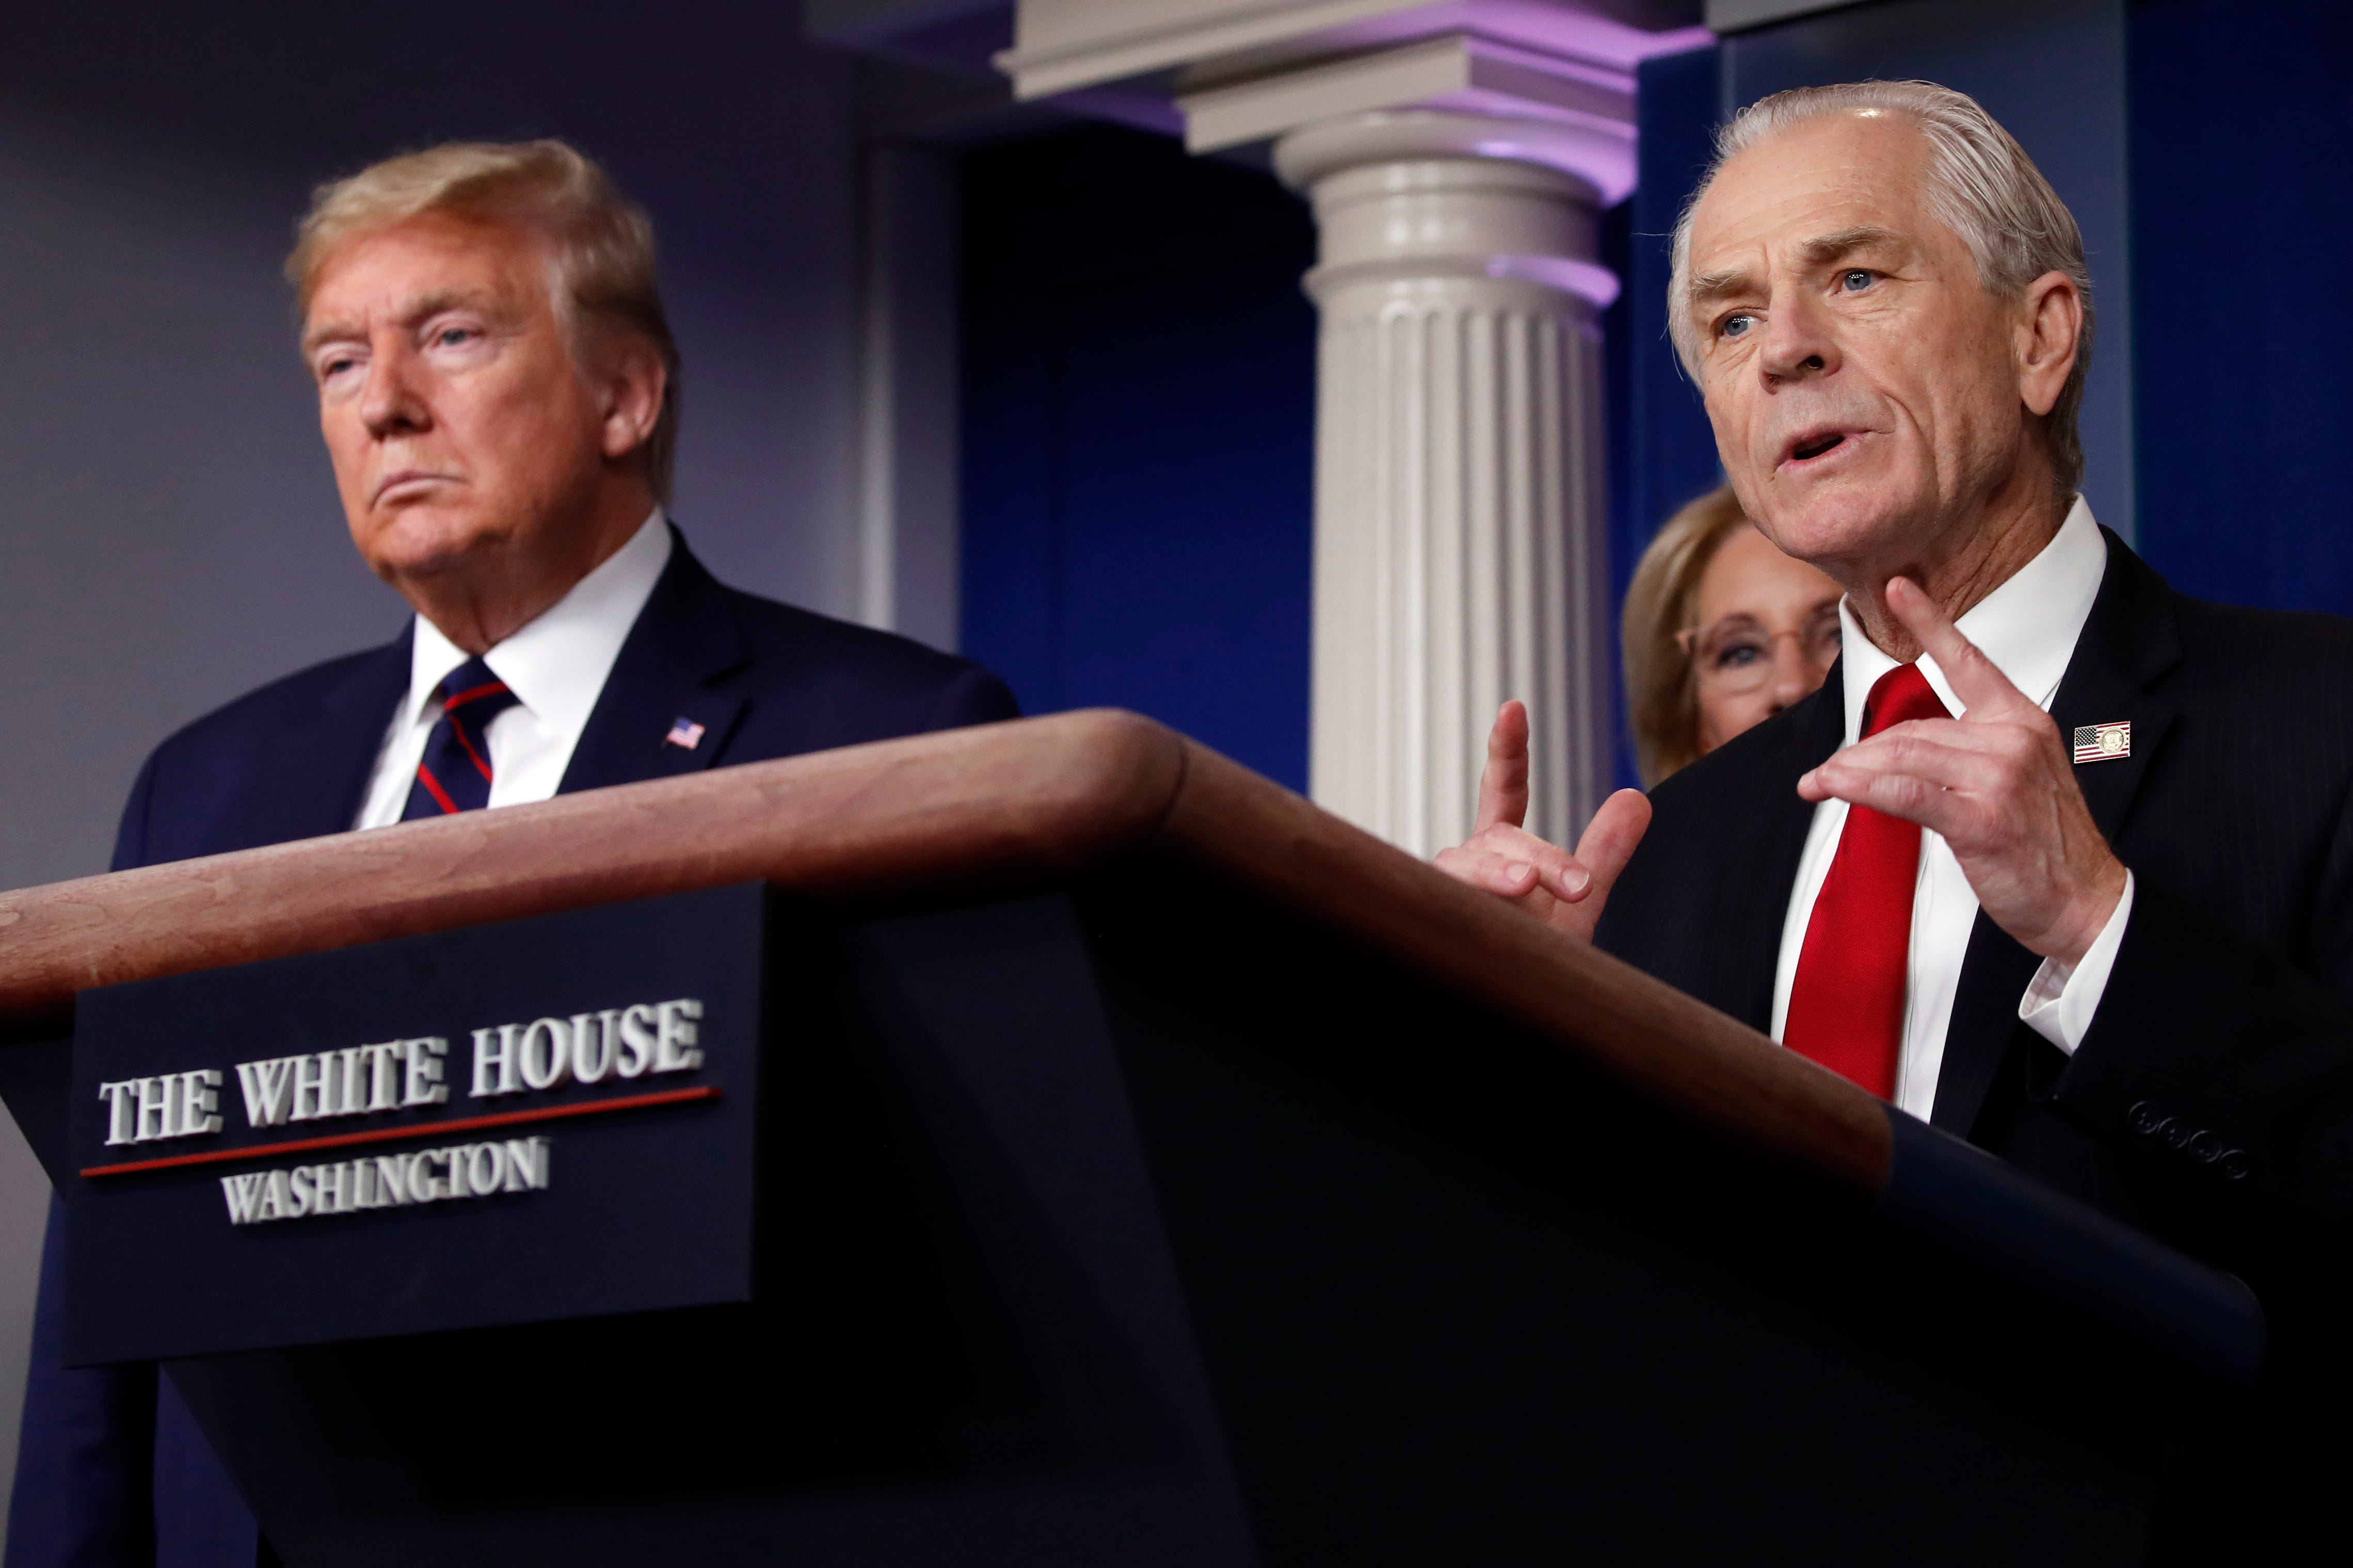 Trump aide Peter Navarro says  second opinion  needed on Fauci s view of anti-malaria drug